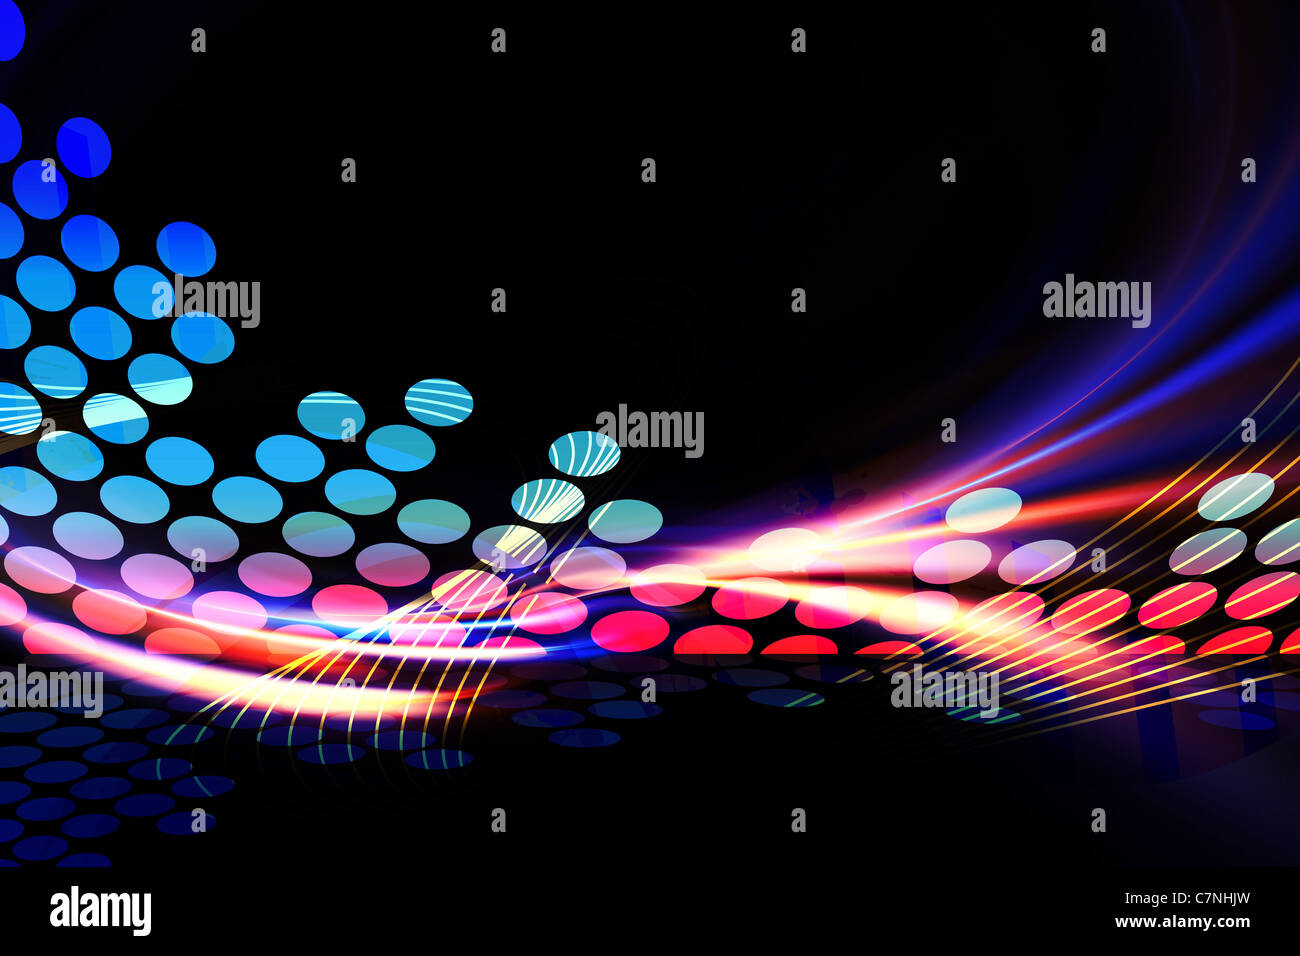 A glowing graphic digital audio equalizer illustration with rainbow fractal art accents. - Stock Image